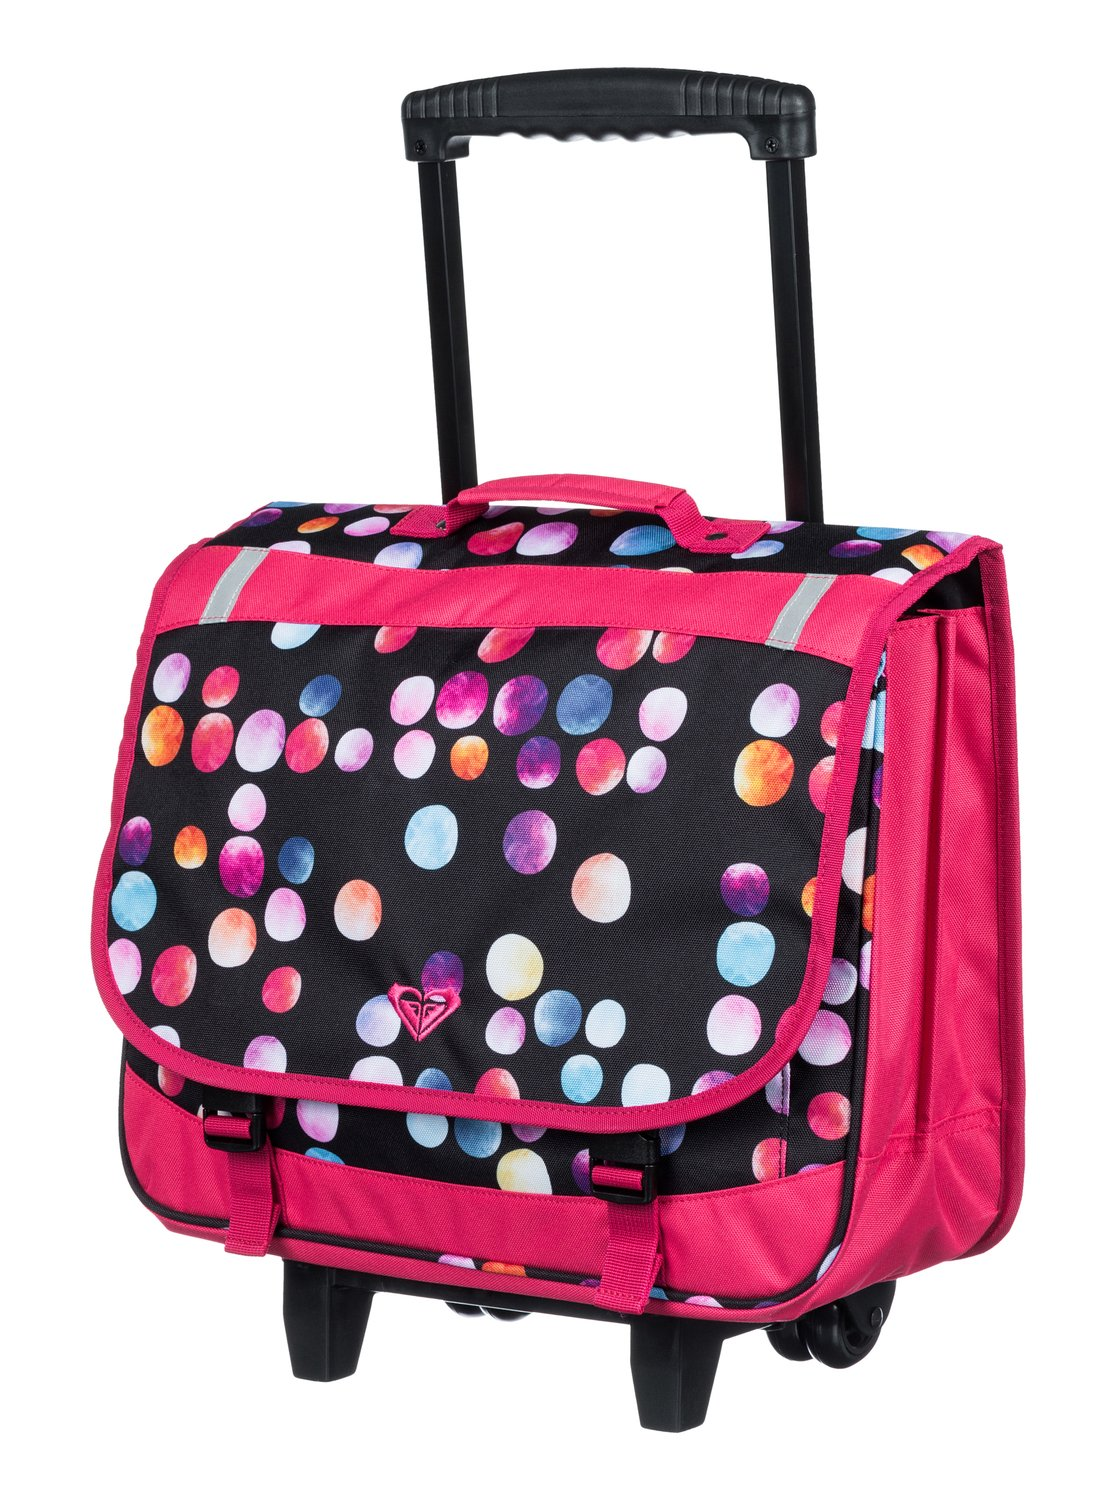 Roxy Cartable à roulettes Green Monday Trolley GufH363vv0